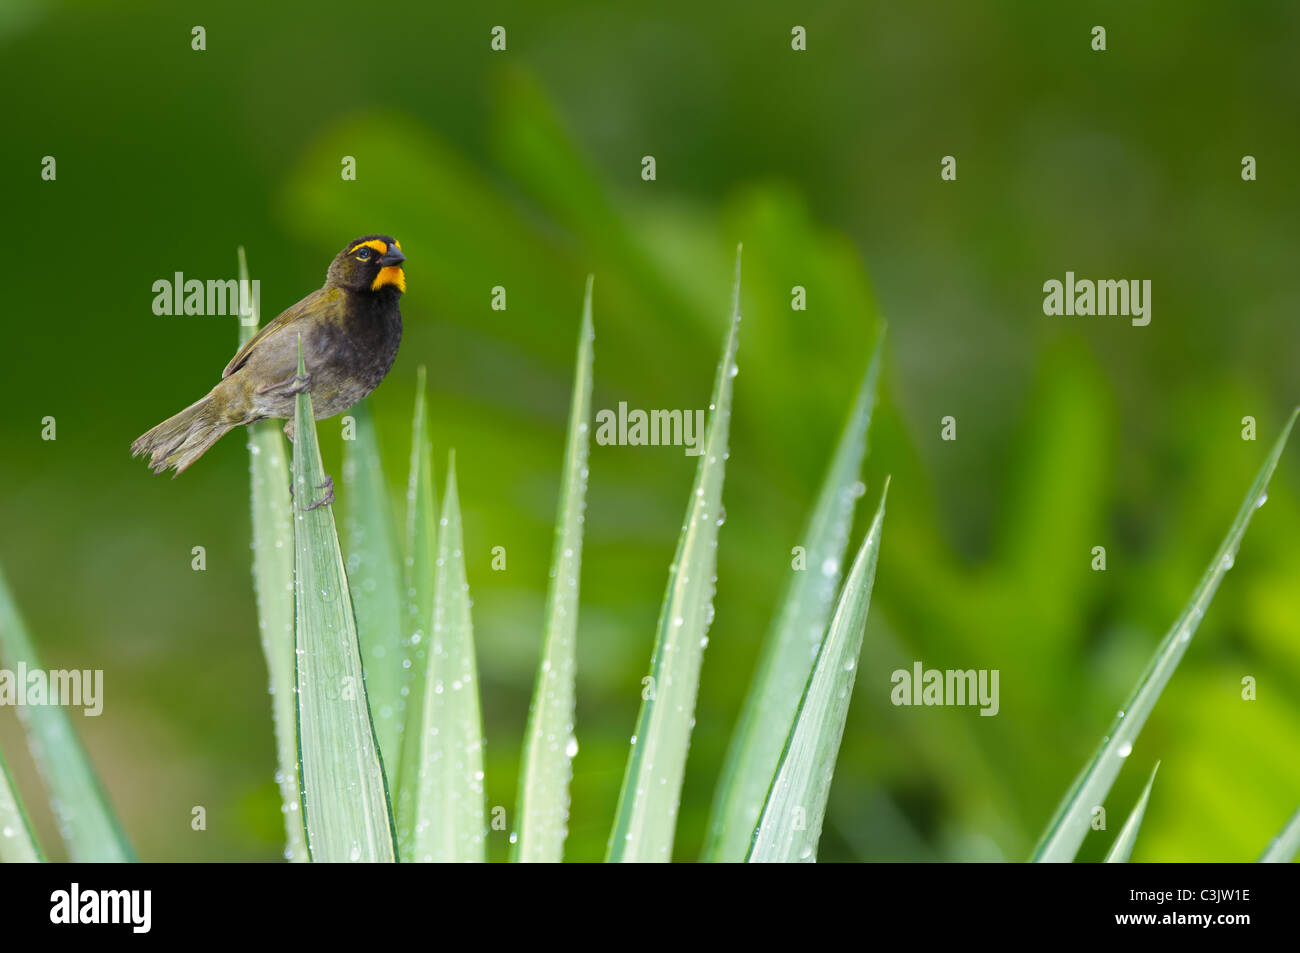 A male Yellow-faced Grassquit (Tiaris olivacea) perches on a dewy plant. - Stock Image